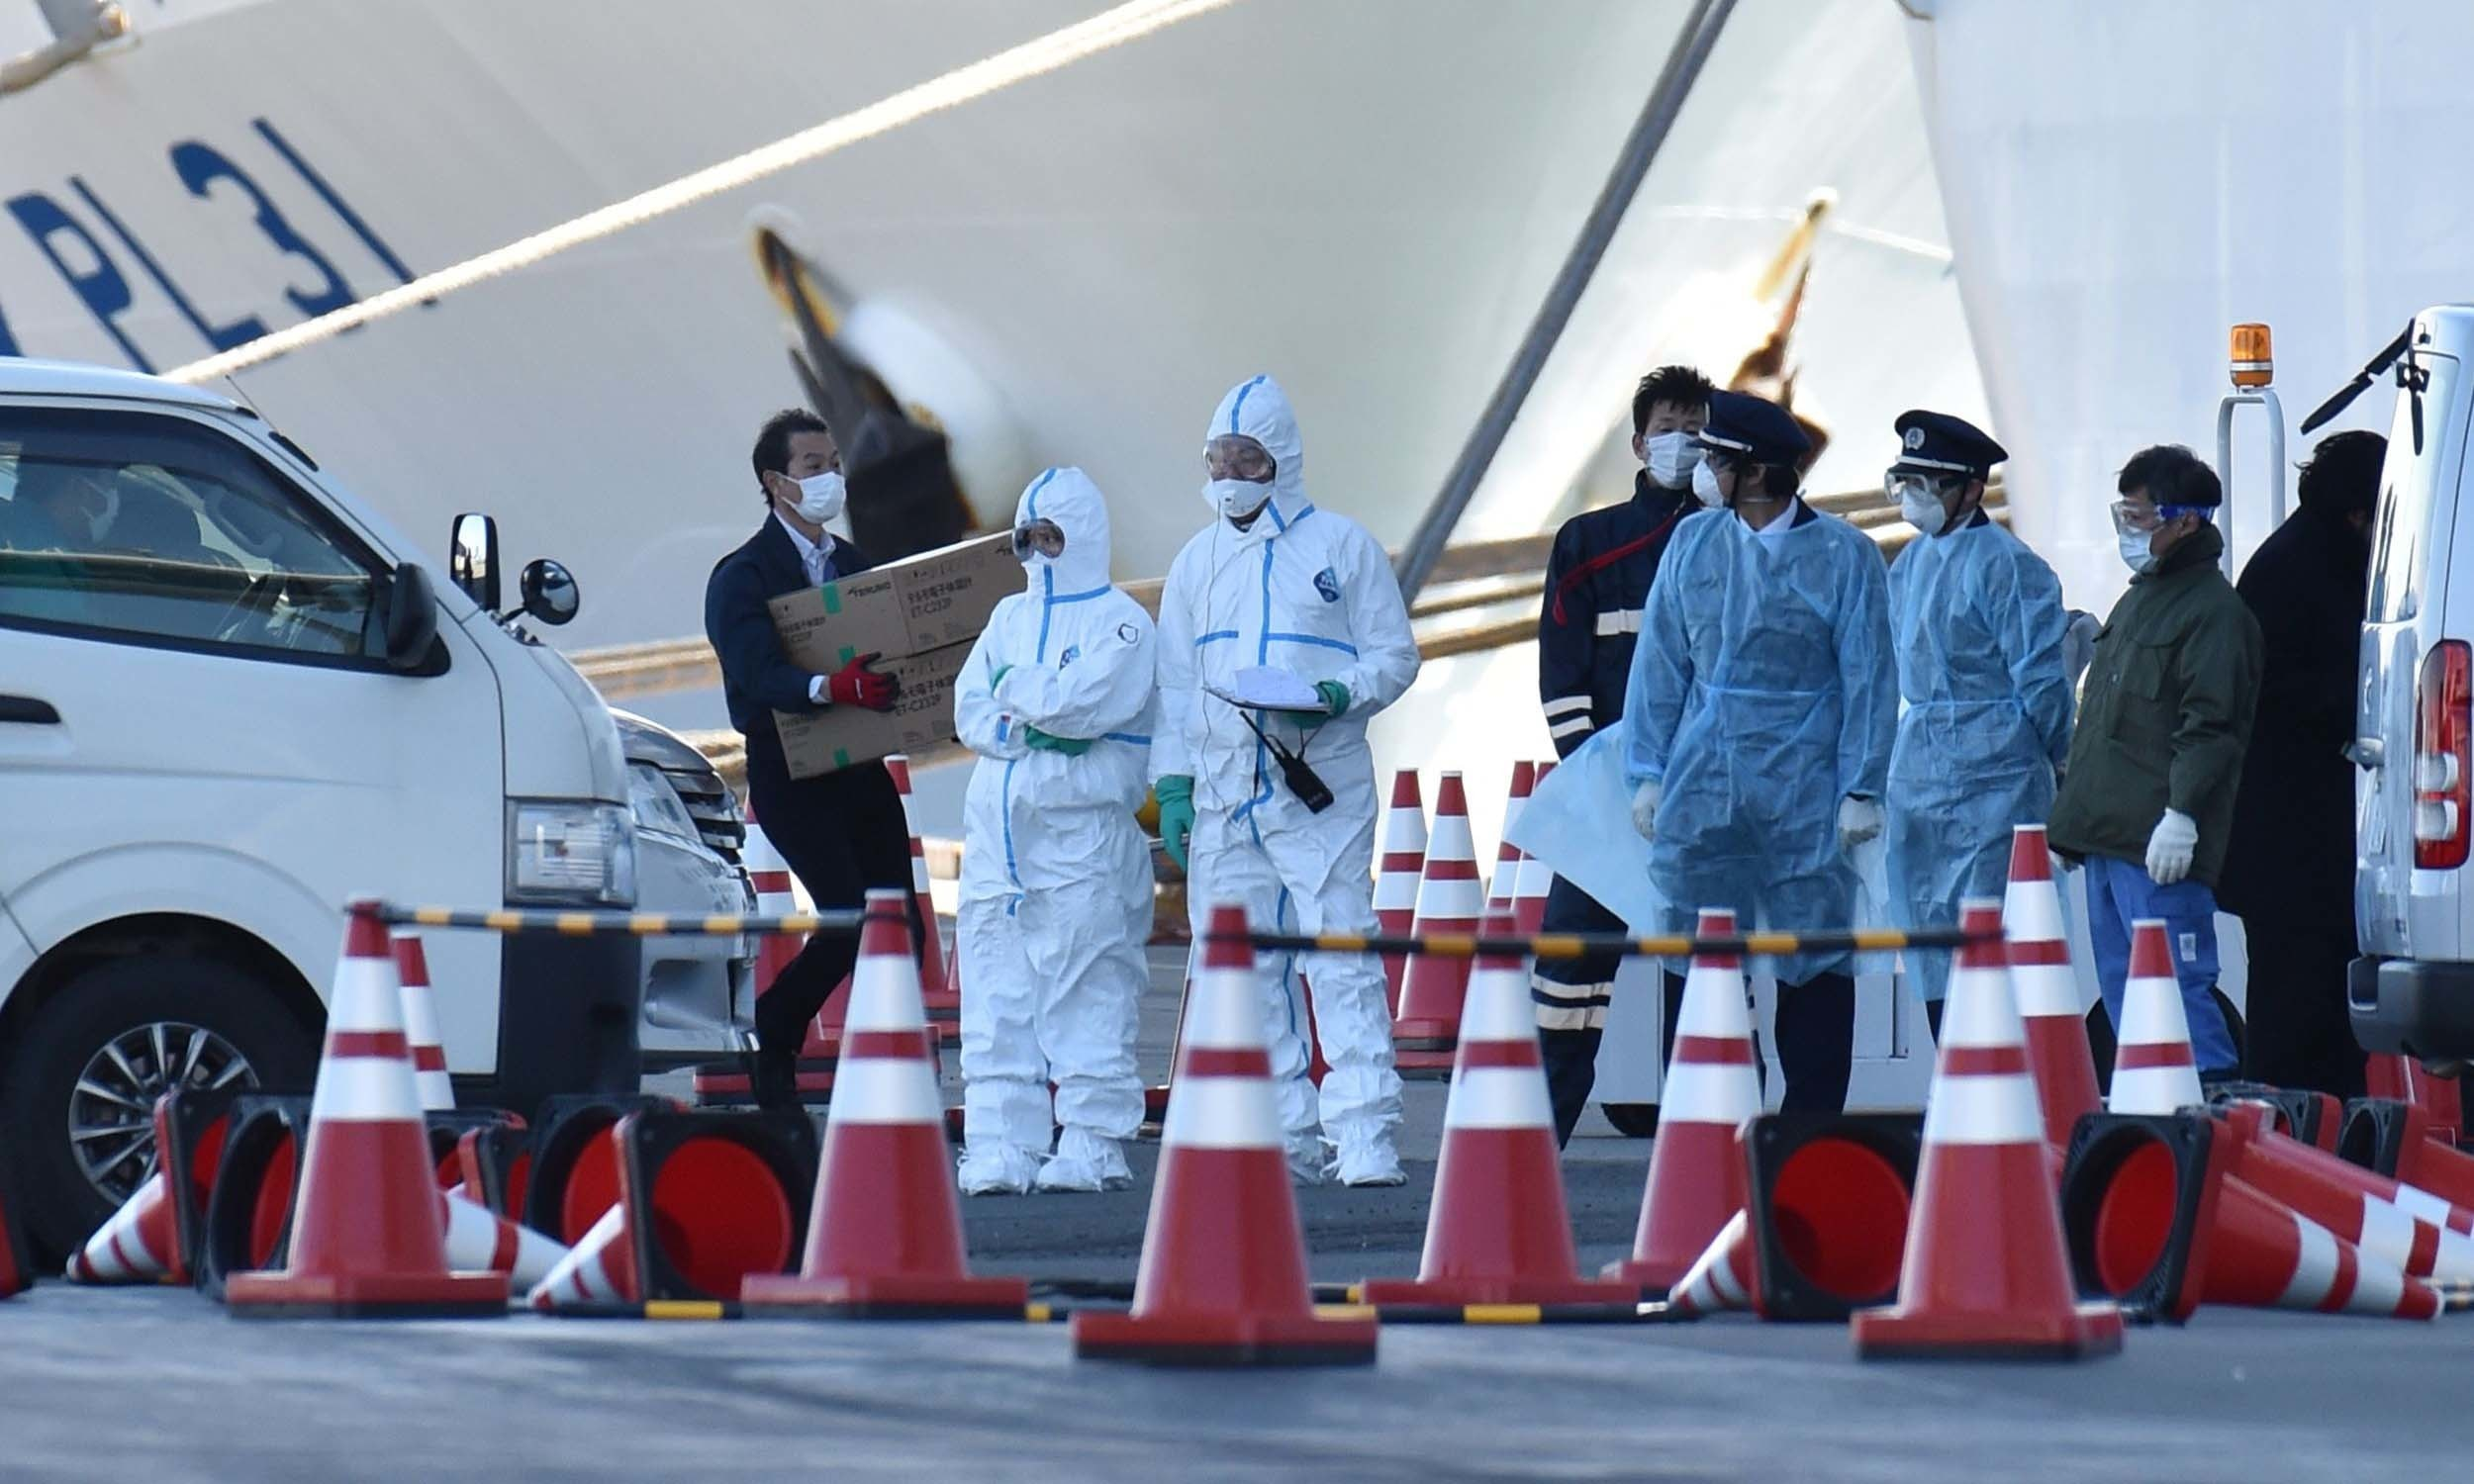 Personnel clad in protective gears and tasked to provide care for suspected patients on board the Diamond Princess cruise ship, prepare to carry out patients at the Daikoku Pier Cruise Terminal in Yokohama on February 6 after bringing patients from the ship. — AFP